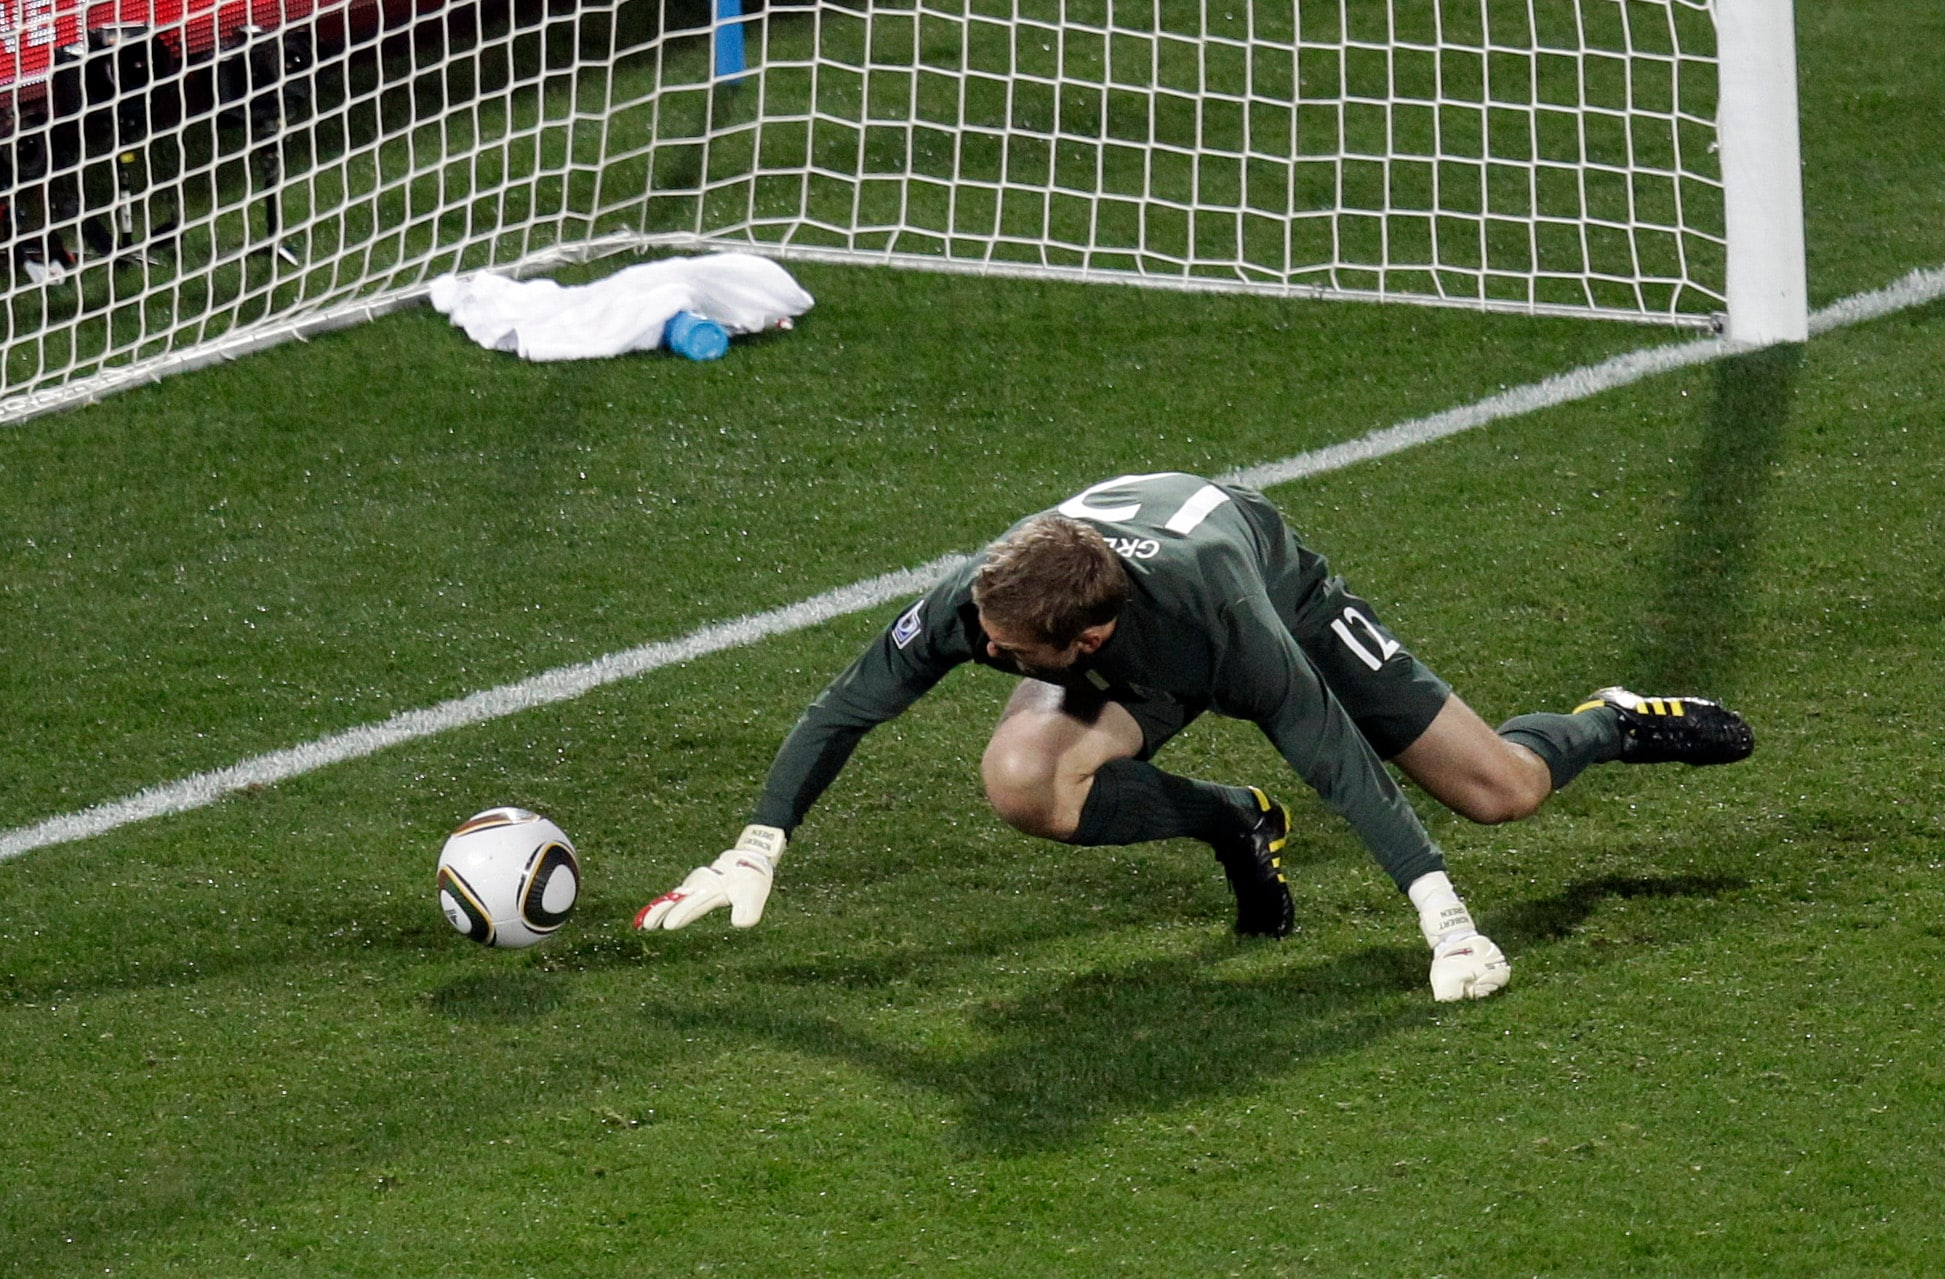 """The moment that came with a statutory warning for all England fans, """"Do not watch, injurious to health"""".<br><br> Well, even if you choose to be less dramatic, England goal-keeper Robert Green's blunder against USA not only meant that the 'Three Lions' got just a point from their first game, it also ensured that they do not top the group and ended up playing the indomitable Germans who dumped them out of the tournament after a 4-1 drubbing."""